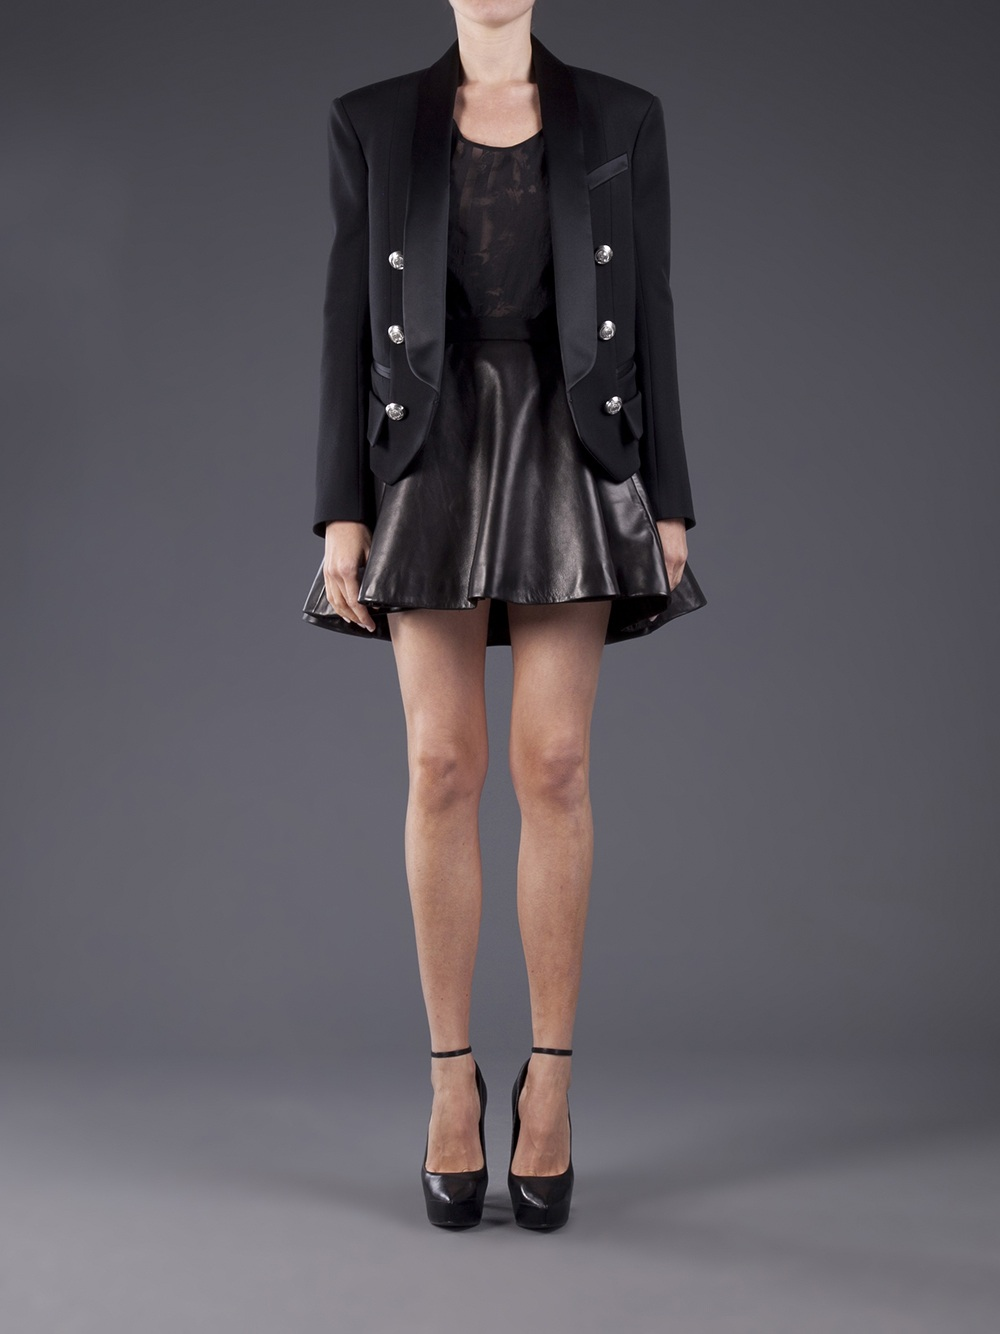 Balmain Structured Blazer - Patron Of The New - Farfetch.com